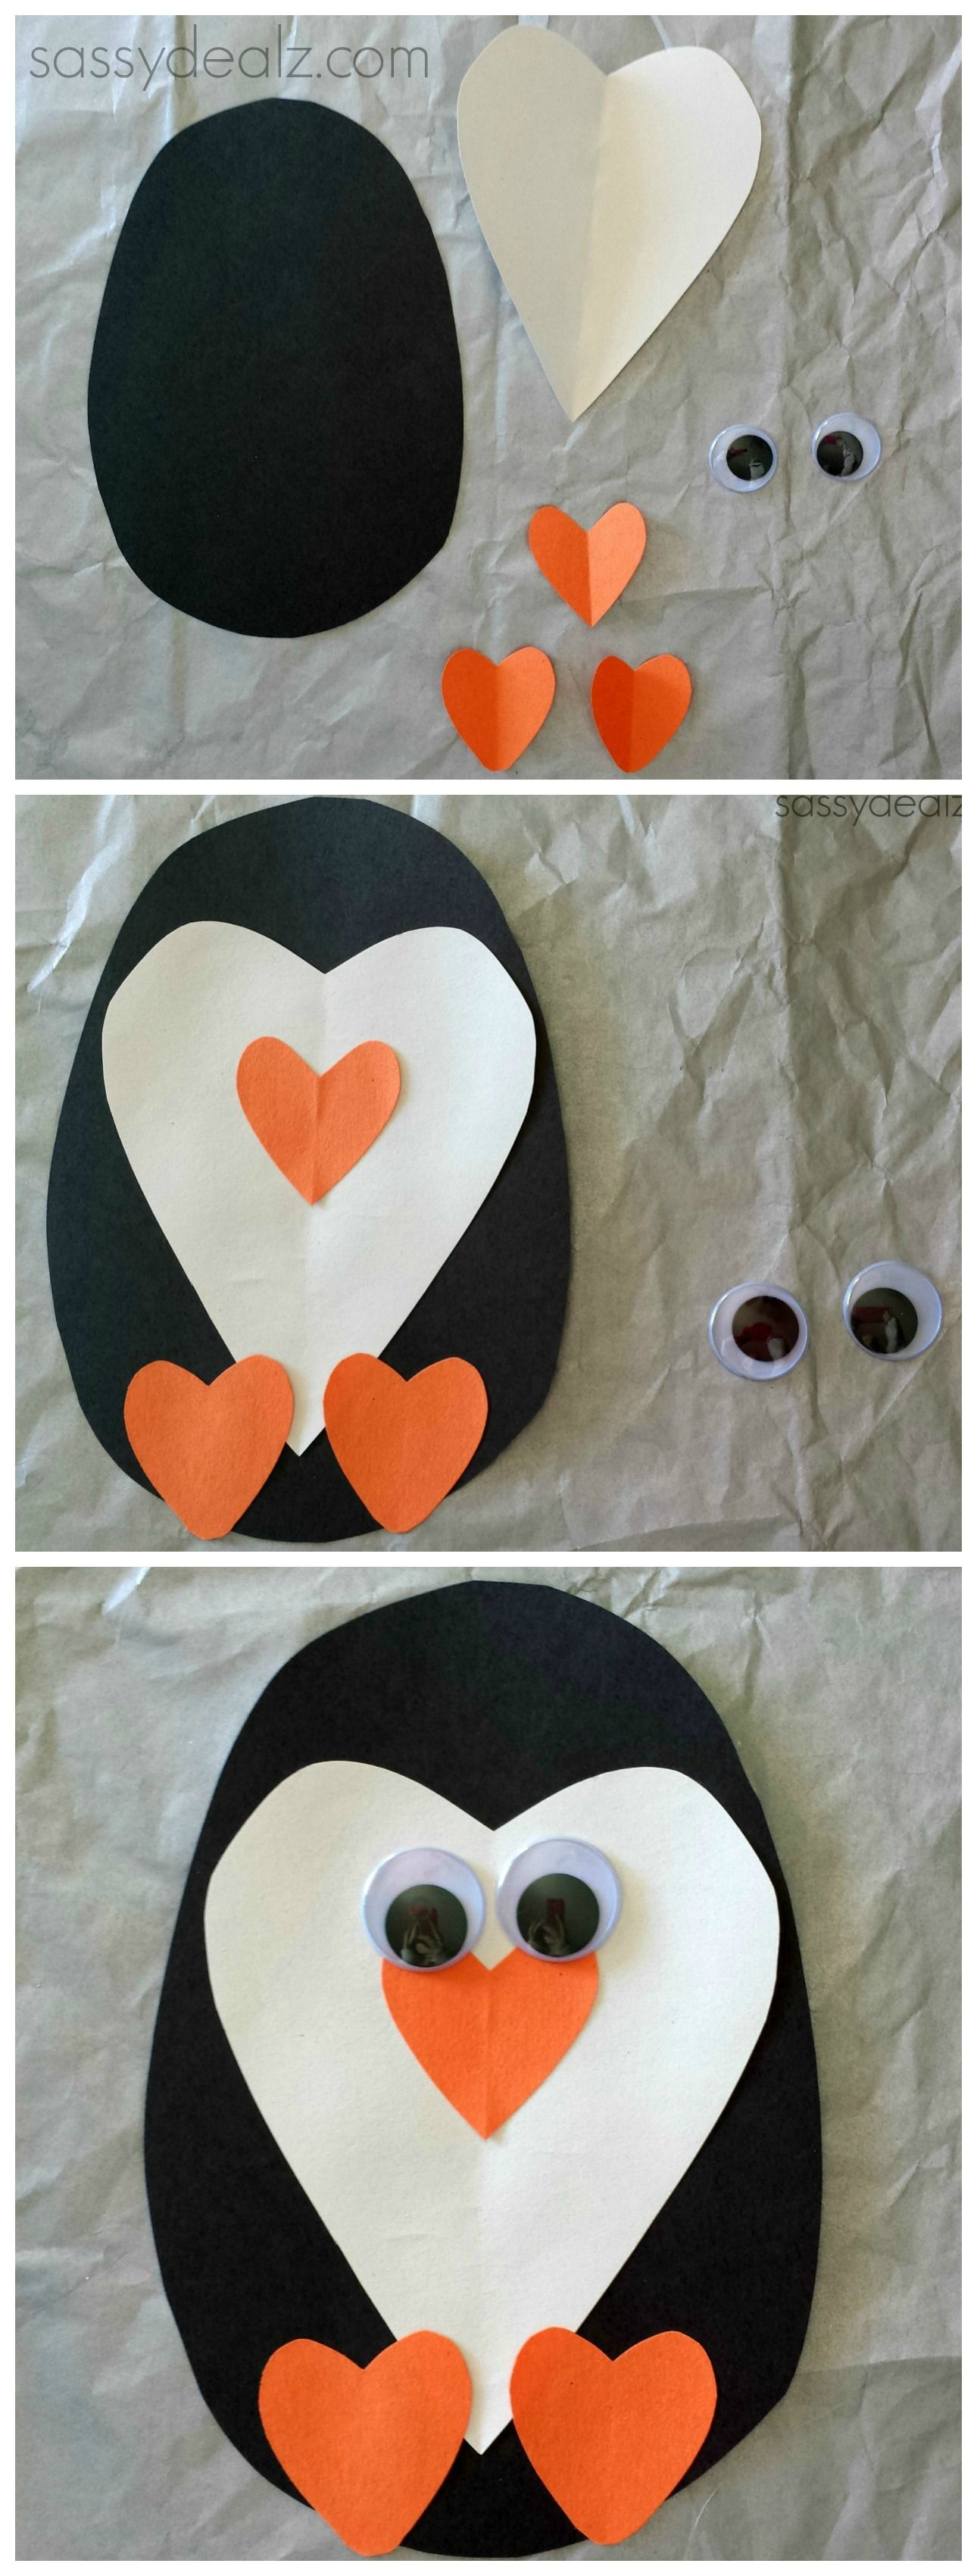 Paper heart penguin craft for kids valentines craft diy heart paper heart penguin craft for kids valentines craft diy heart animal art project jeuxipadfo Gallery